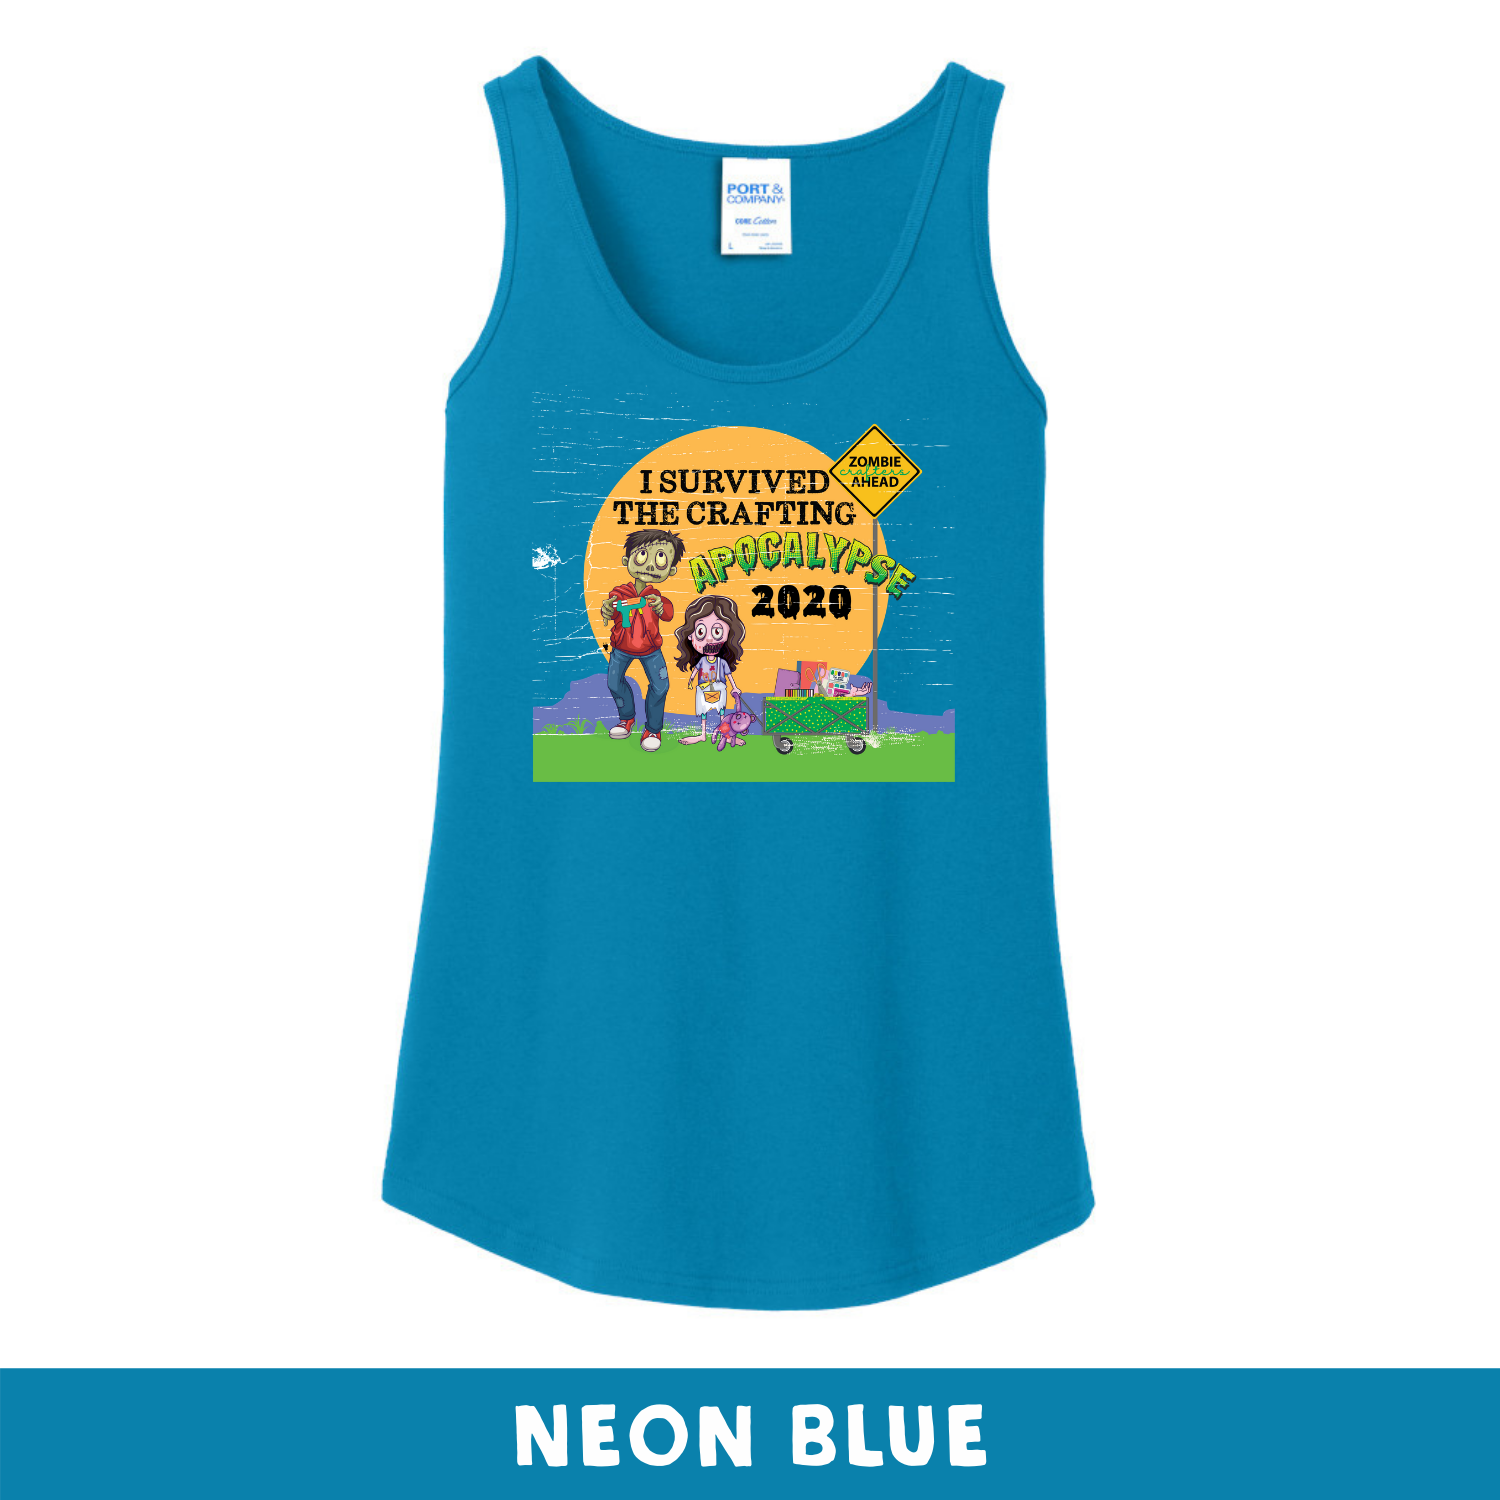 Neon Blue -  Woman's Cut Tank Top - I Survived The 2020 Crafting Apocalypse